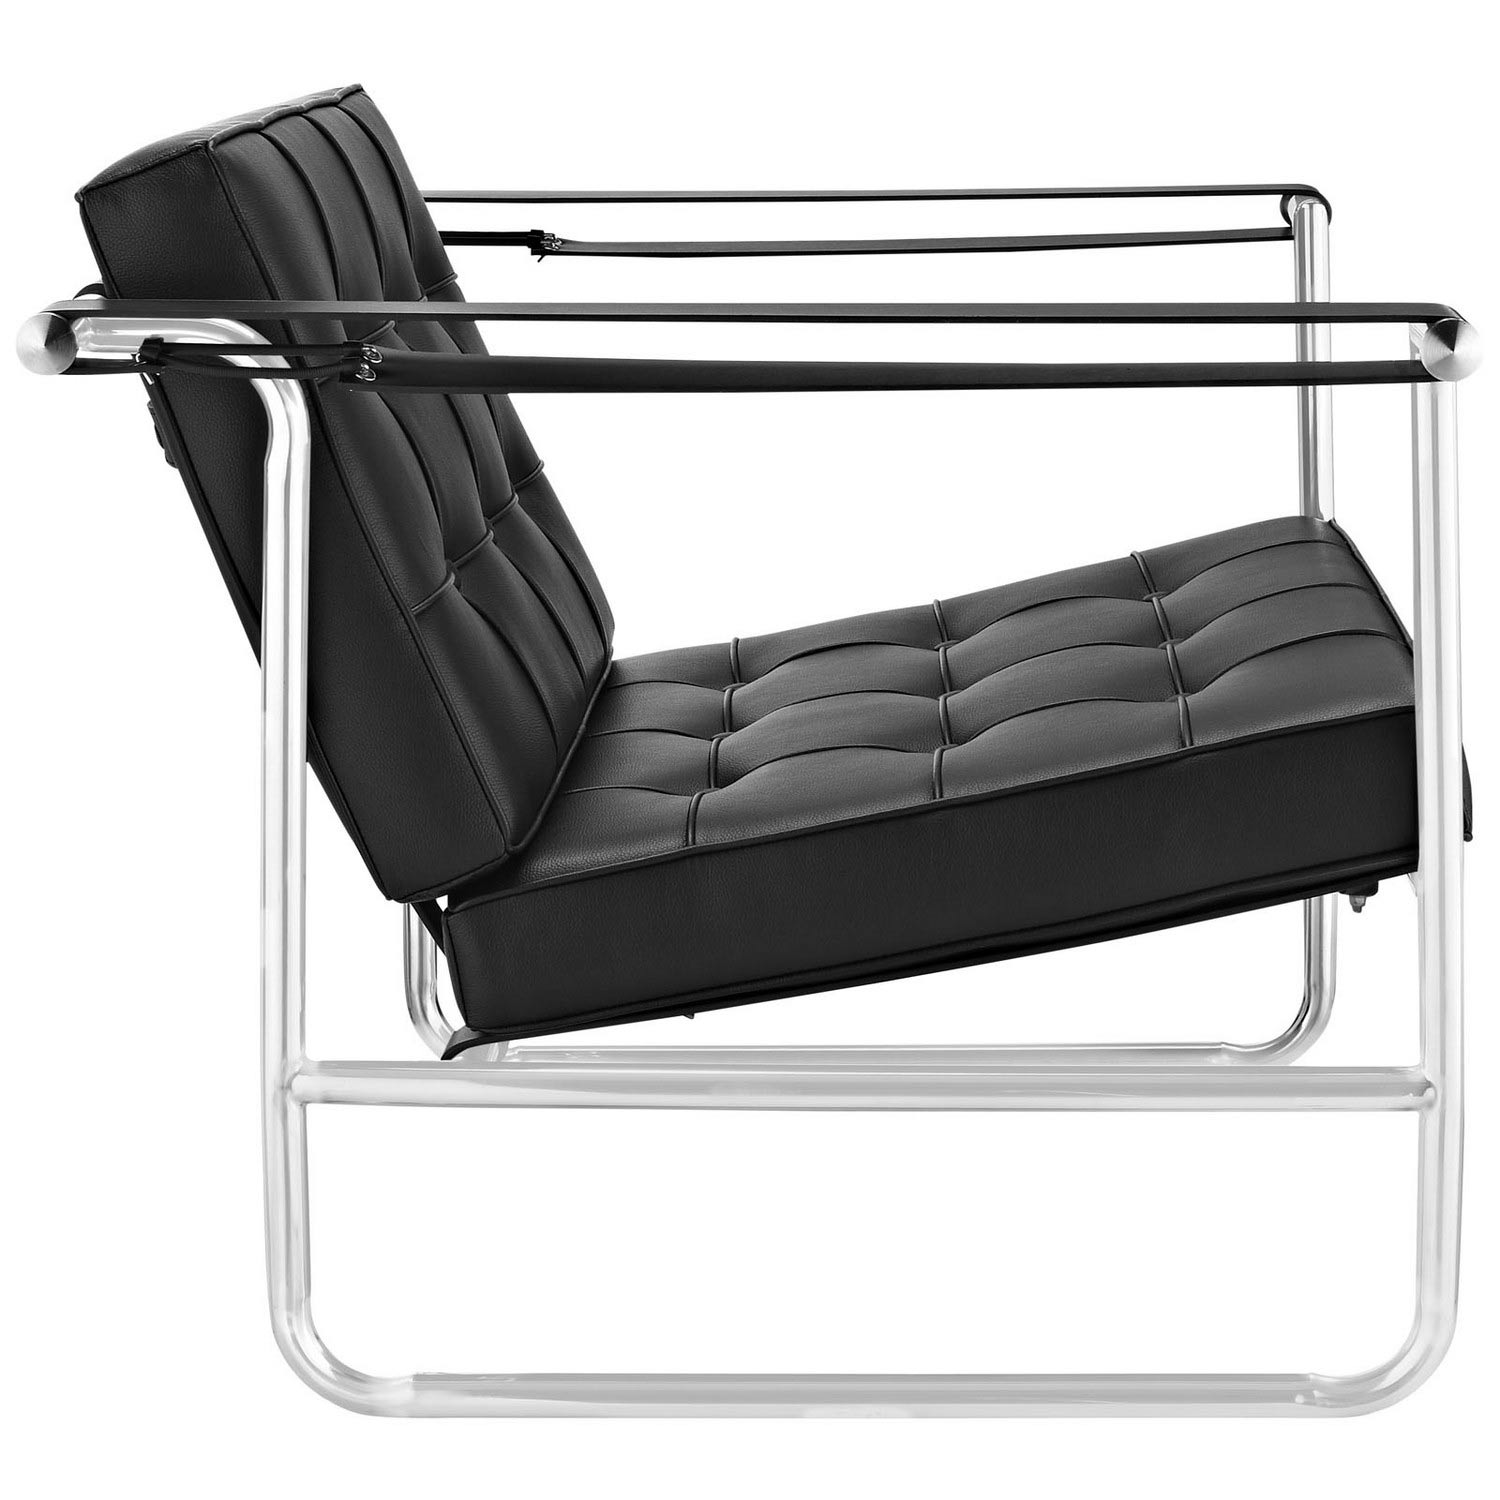 Modway Serene Stainless Steel Lounge Chair - Black